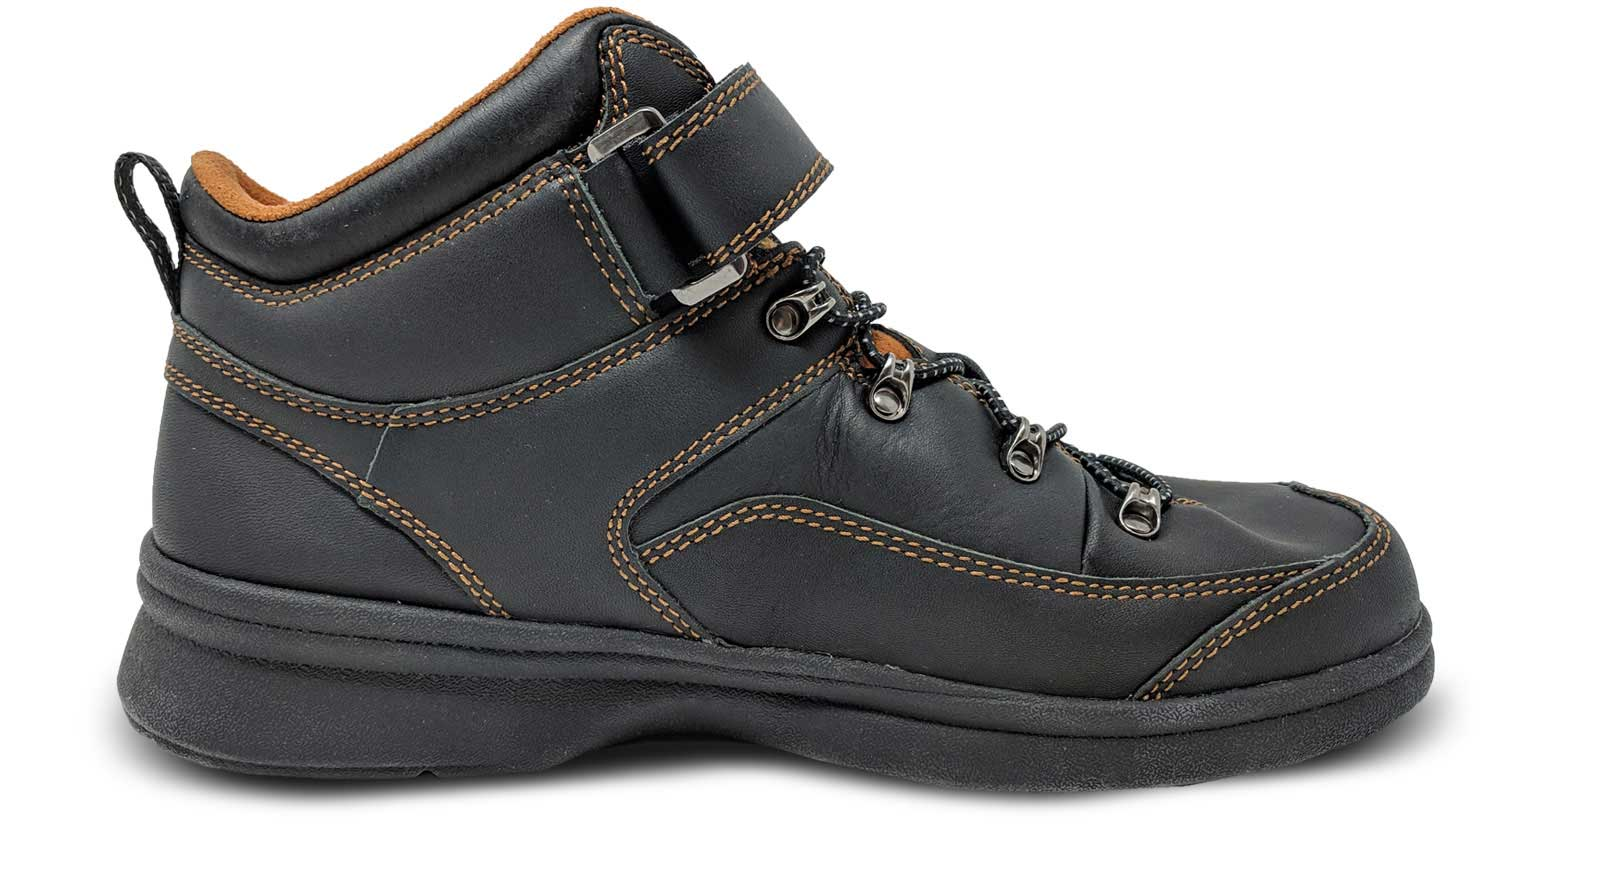 I-RUNNER Pioneer - Mens Hiking Boot